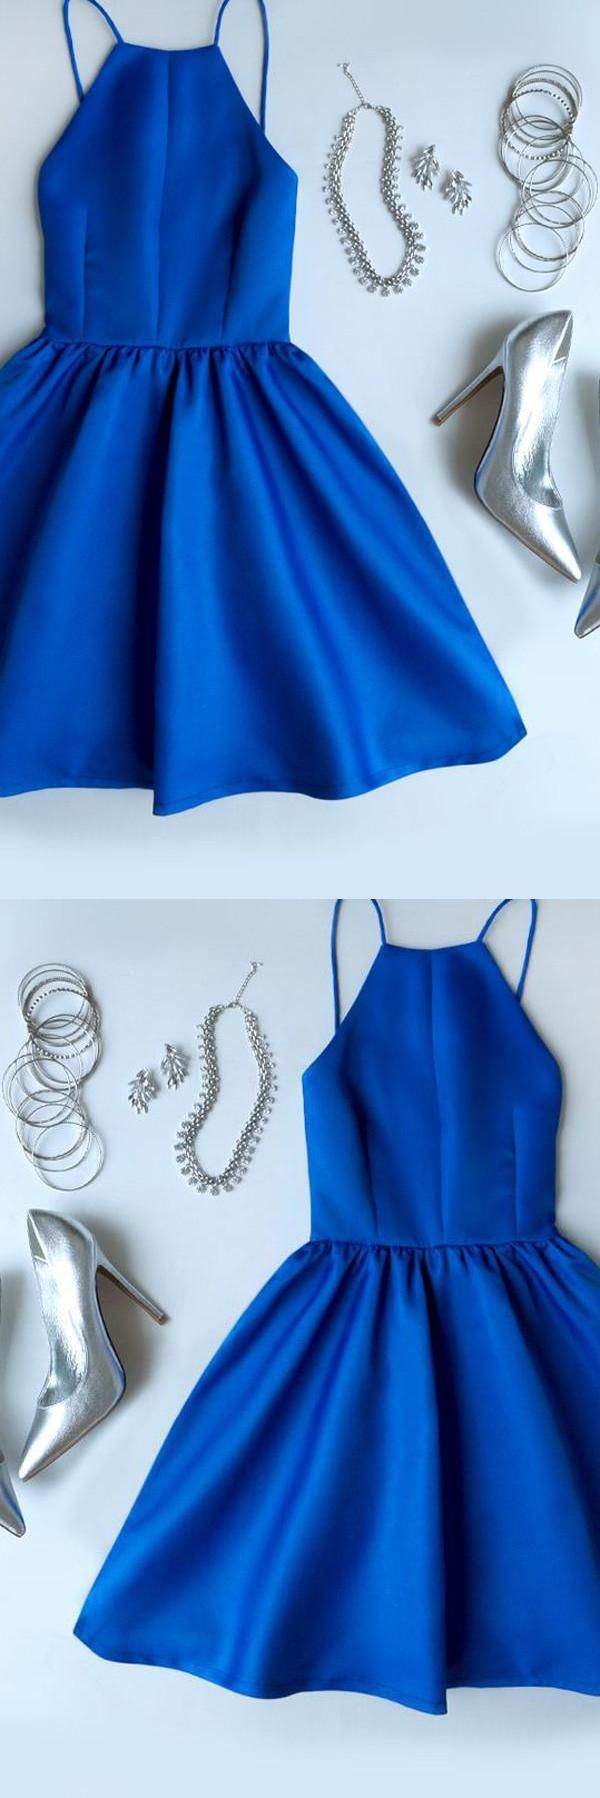 Backless blue short simi in homecoming dresses